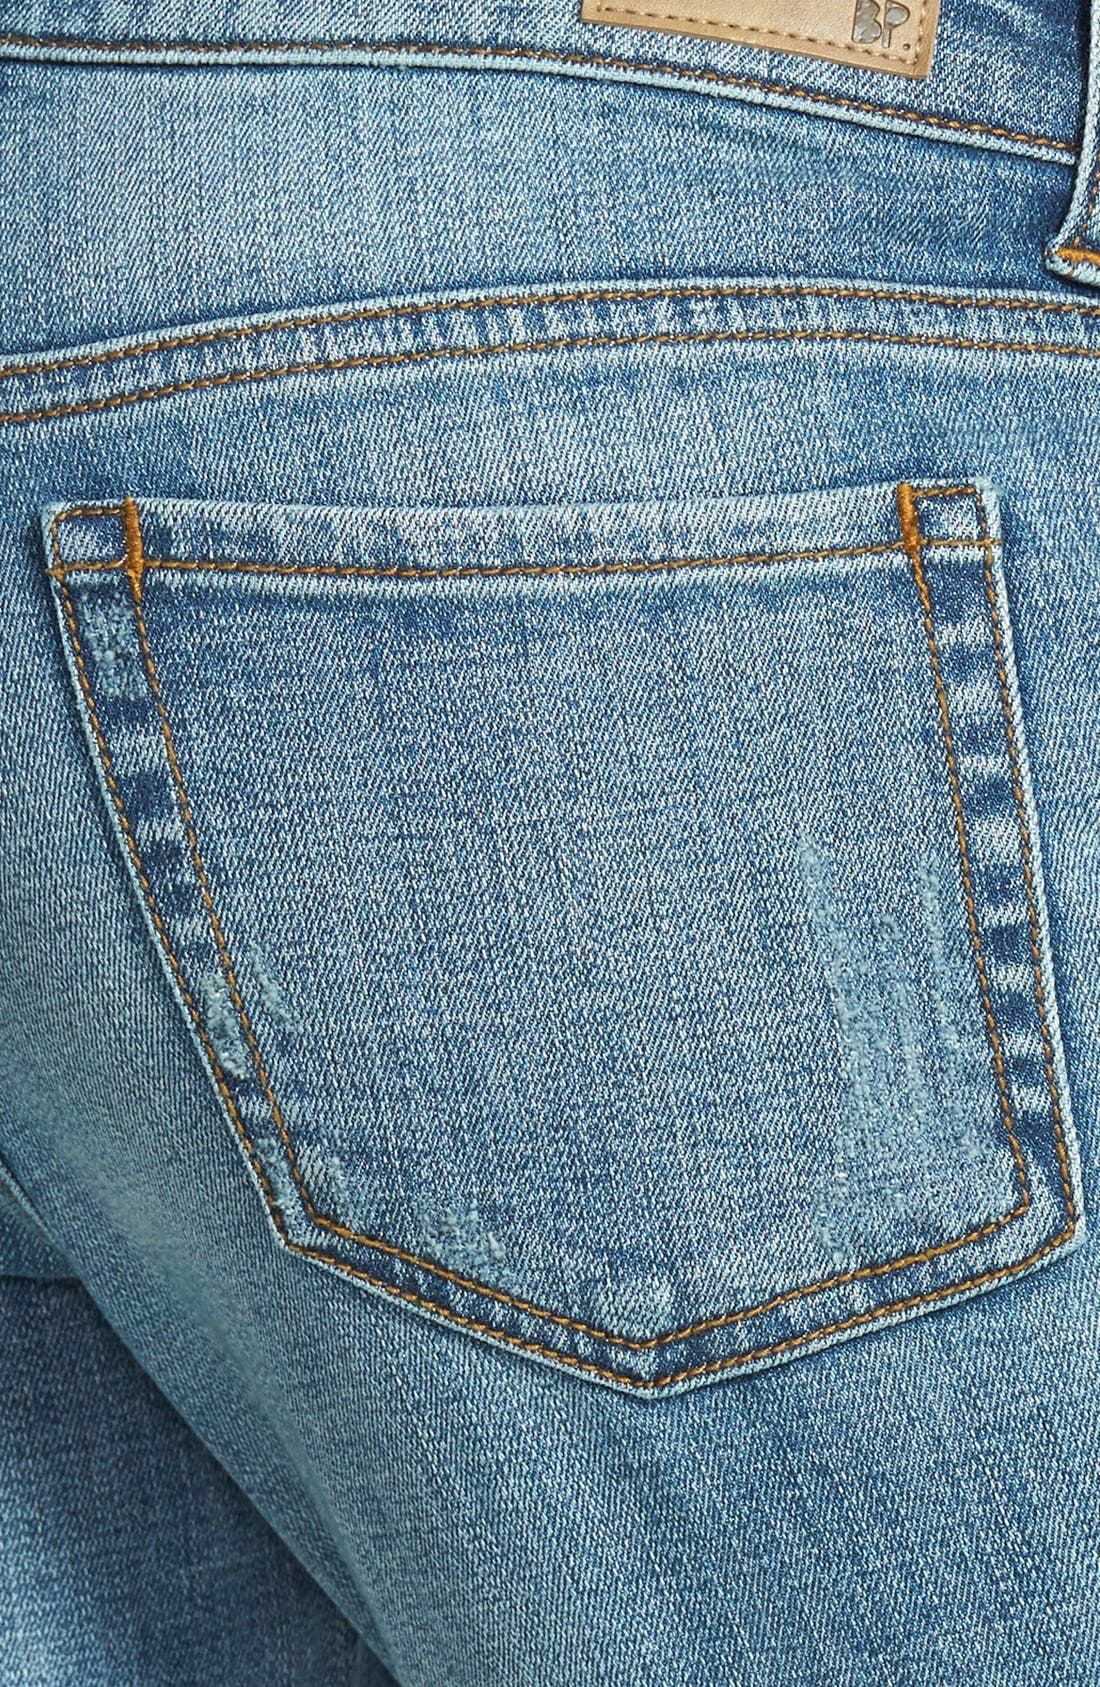 Alternate Image 3  - BP. Girlfriend Jeans (Mystic Blue Distressed)